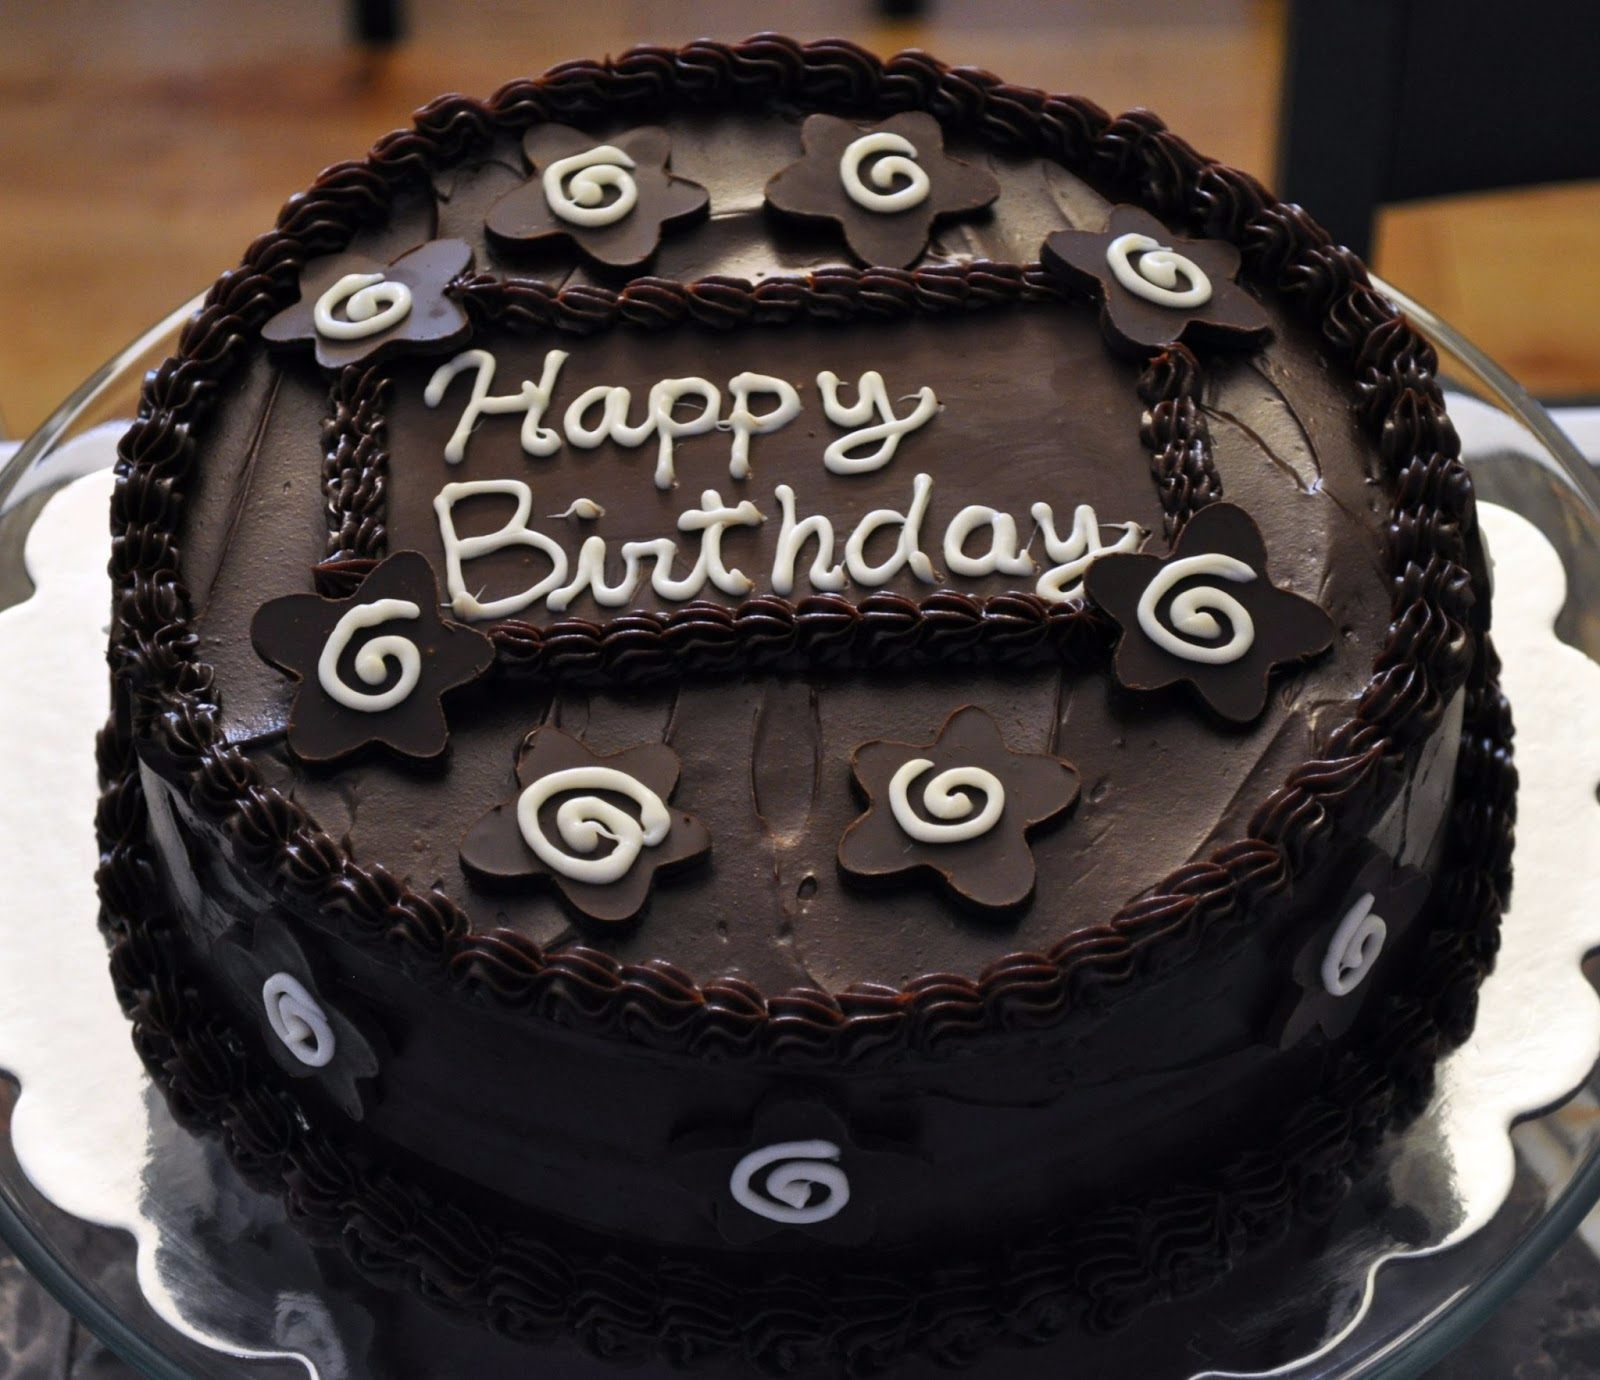 Stupendous 21 Beautiful Birthday Cakes Images Funny Birthday Cards Online Fluifree Goldxyz